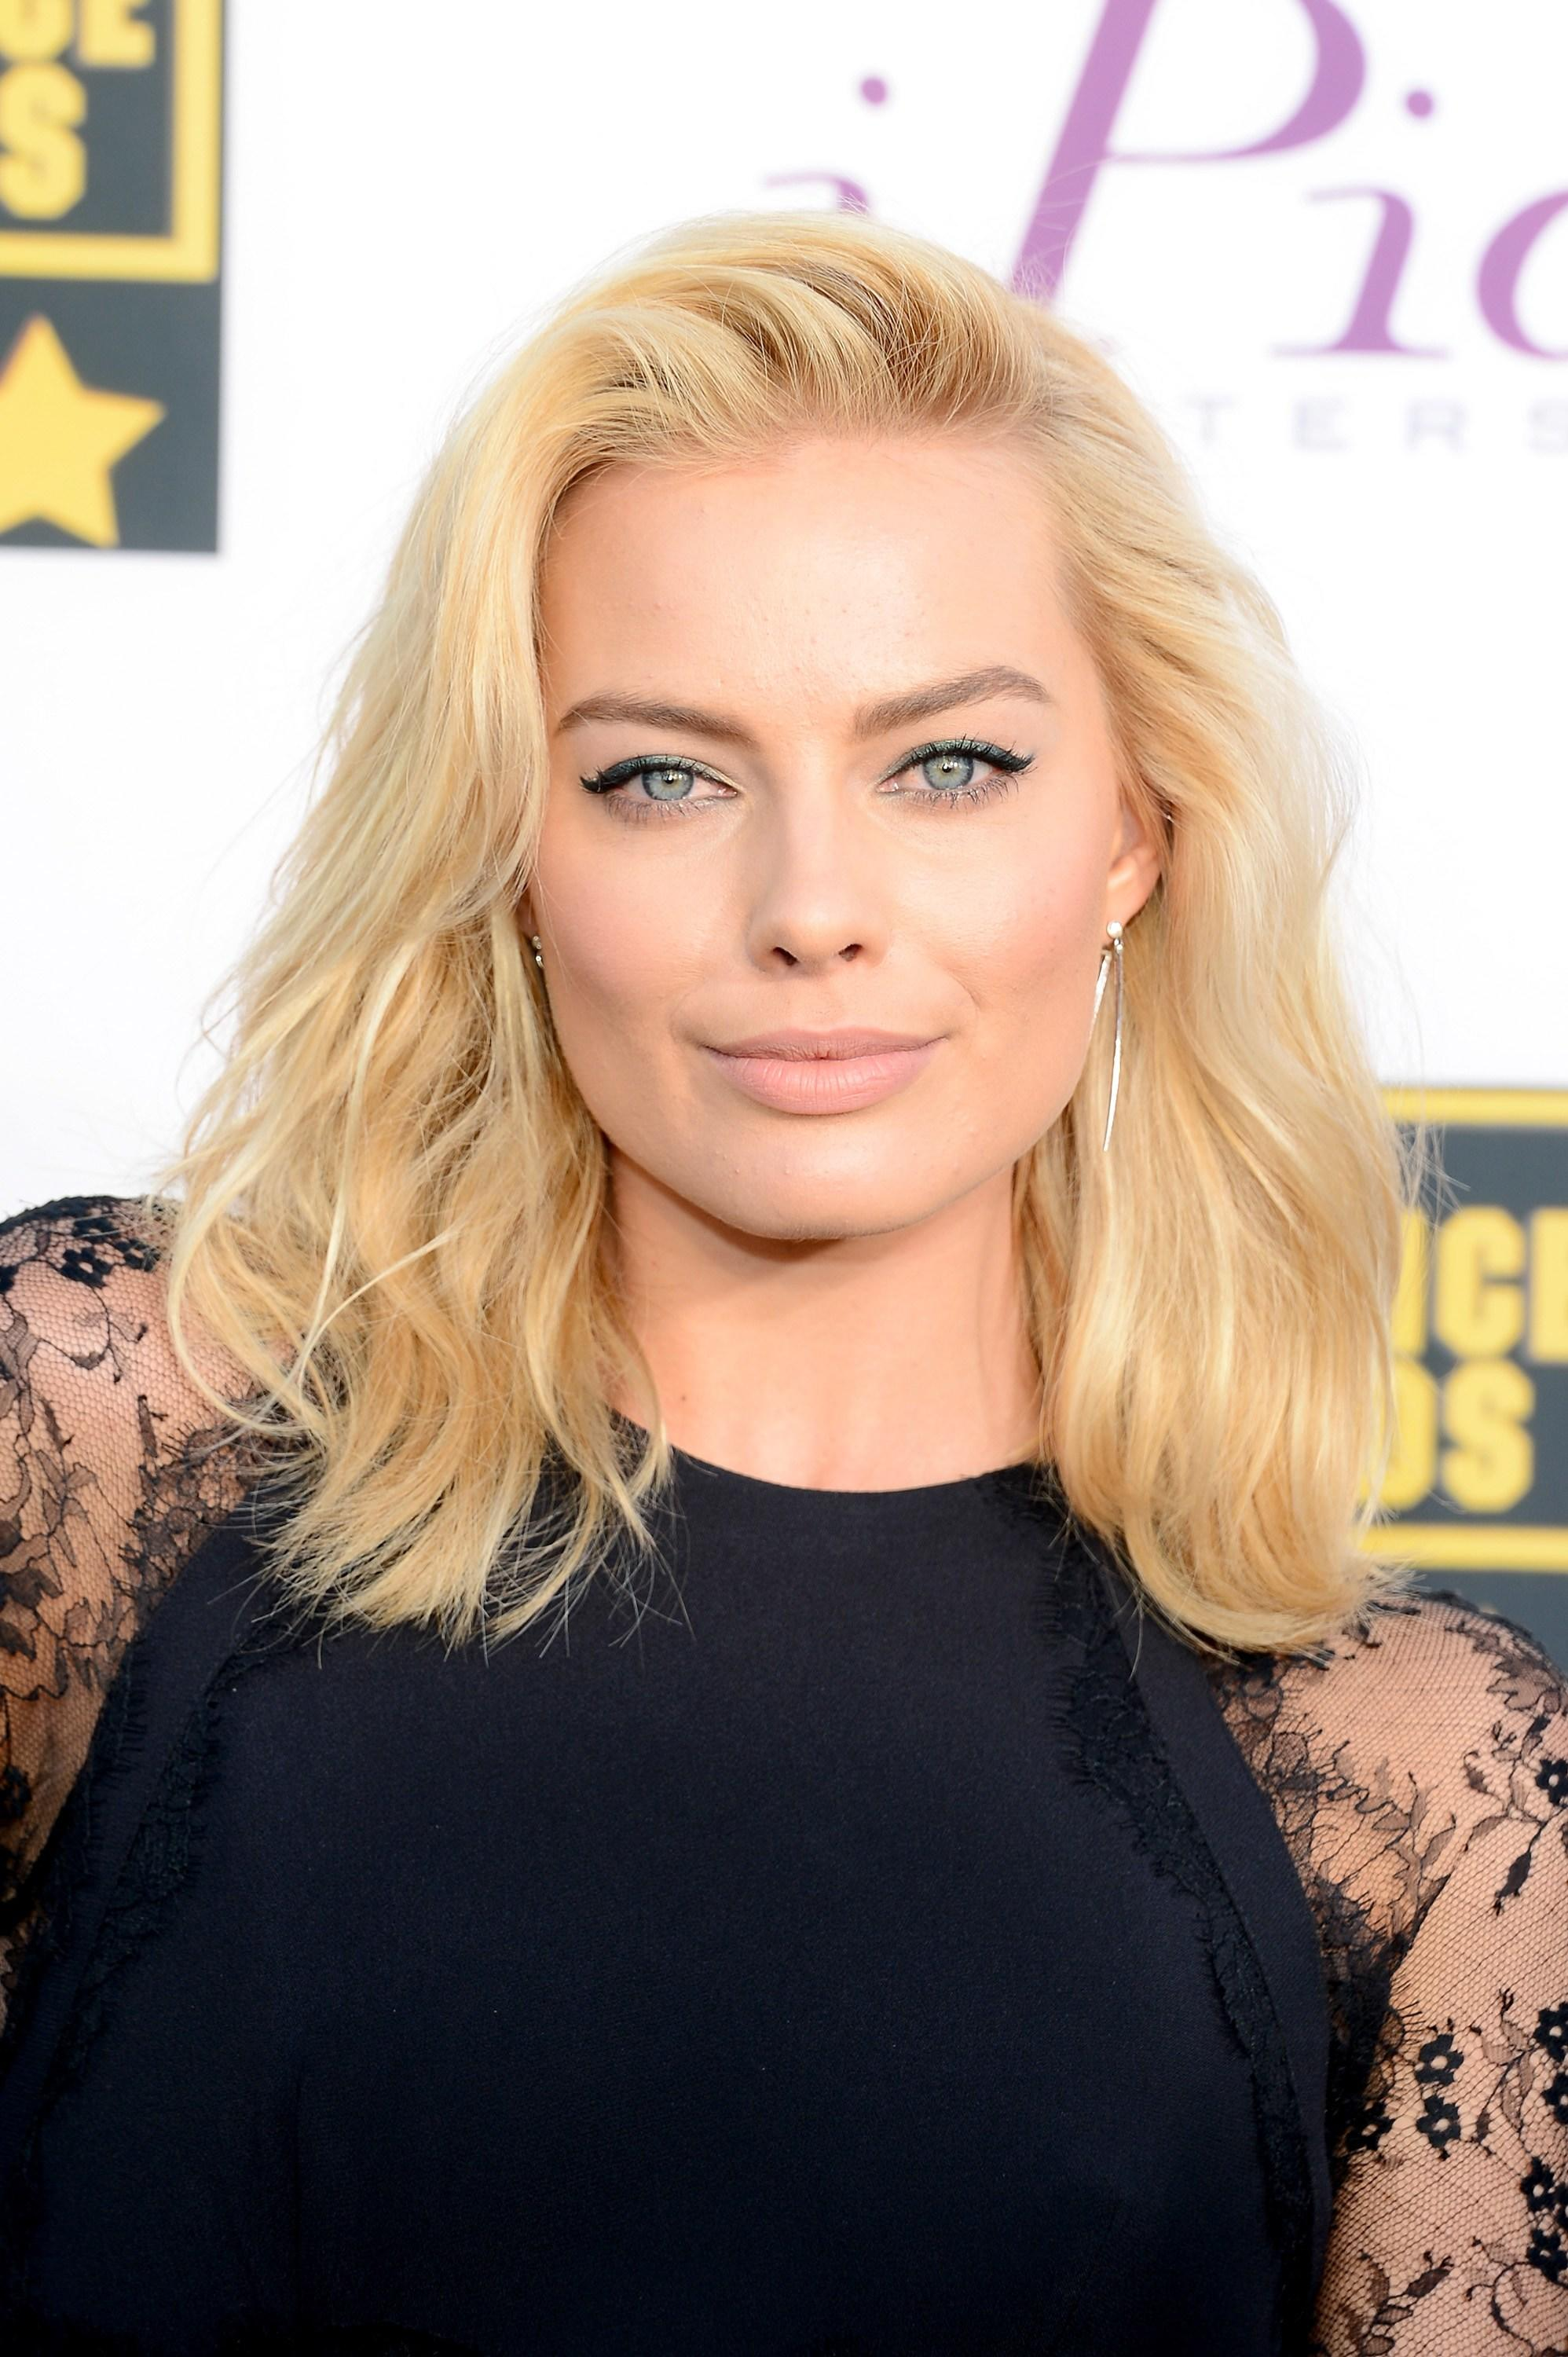 The Best Blonde Hair Color Will Last Longer If You Do These 5 Pictures